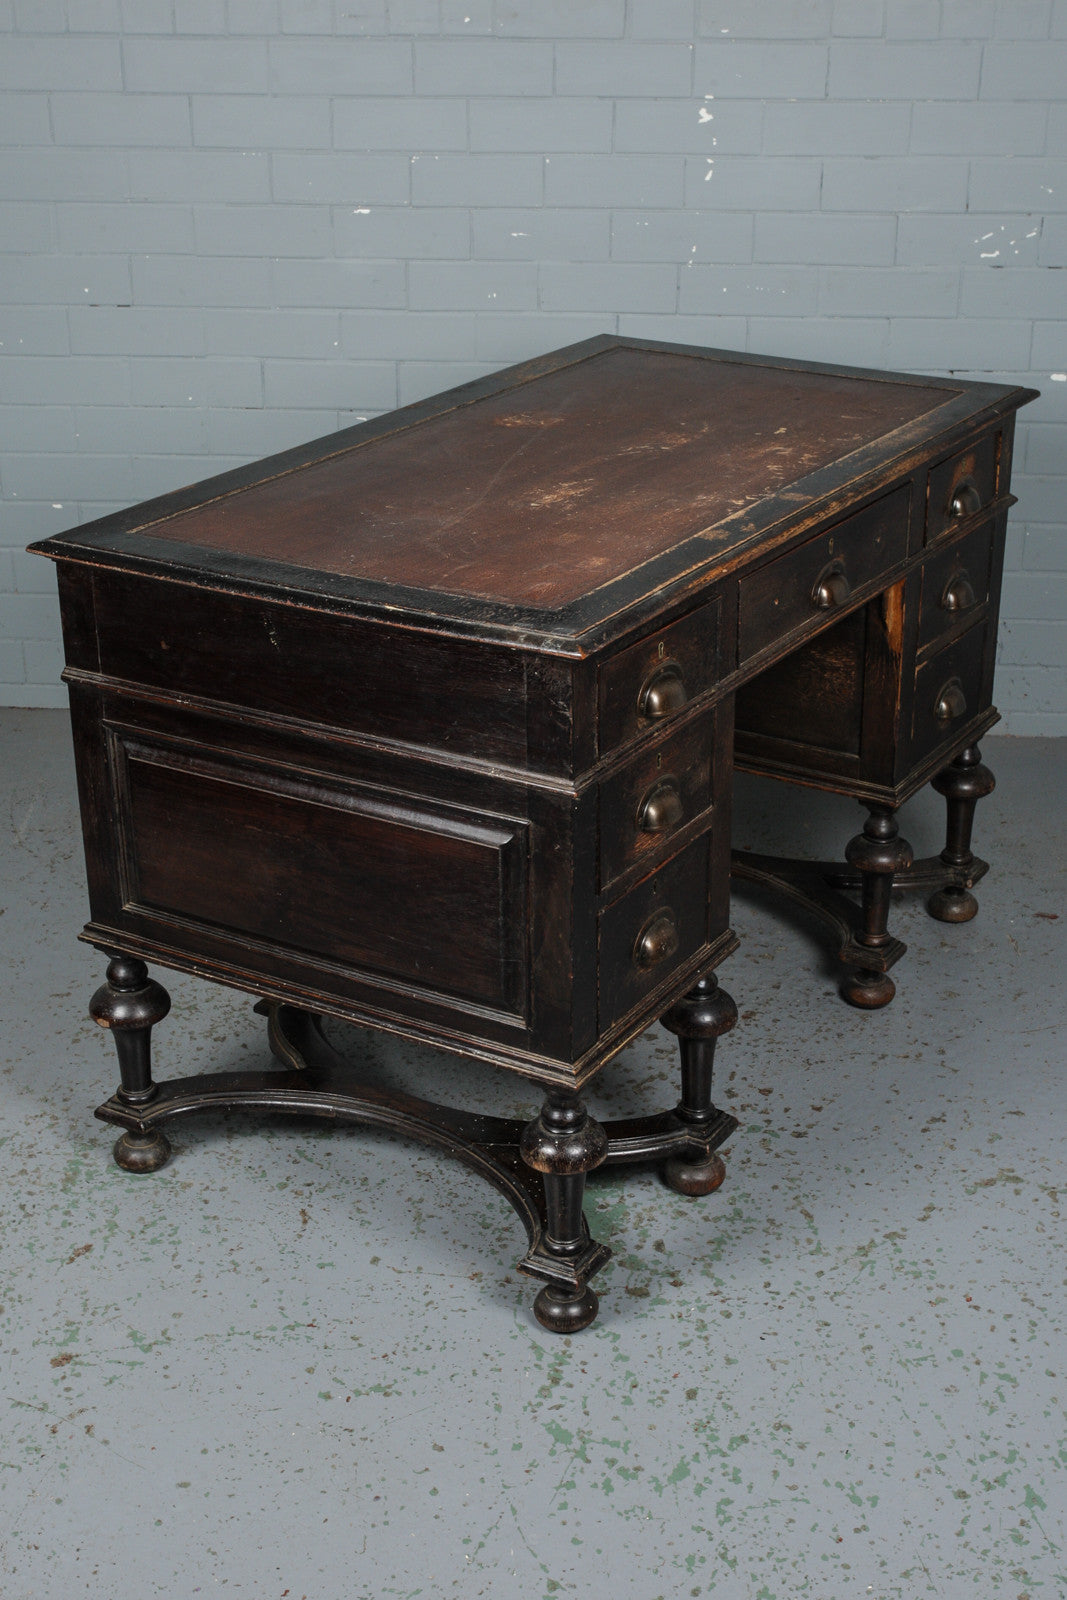 A Victorian ebonised and leather topped kneehole desk available to buy from Industrious Interiors, an online vintage furntiure and homeware store based in Nottingham, England.